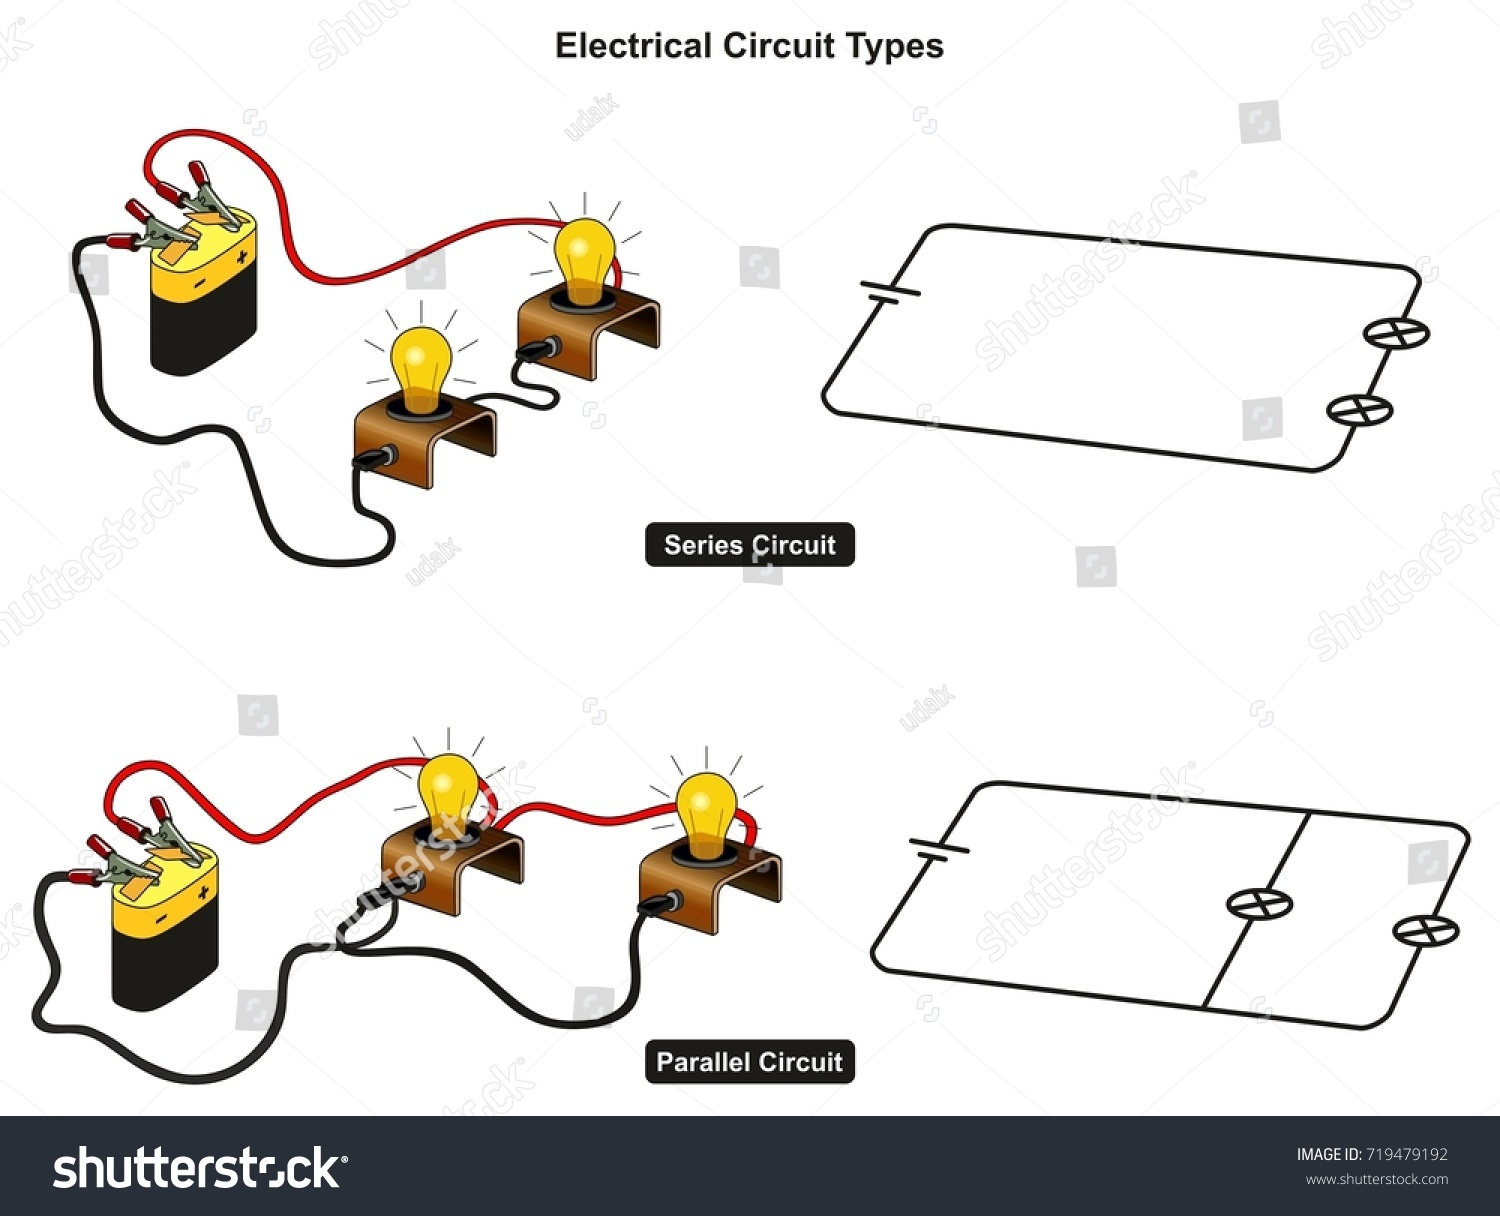 Electrical Circuit Types Infographic Diagram Showing Stock Electricity Circuits For Kids Images How You Connect Lamps In Series And Parallel